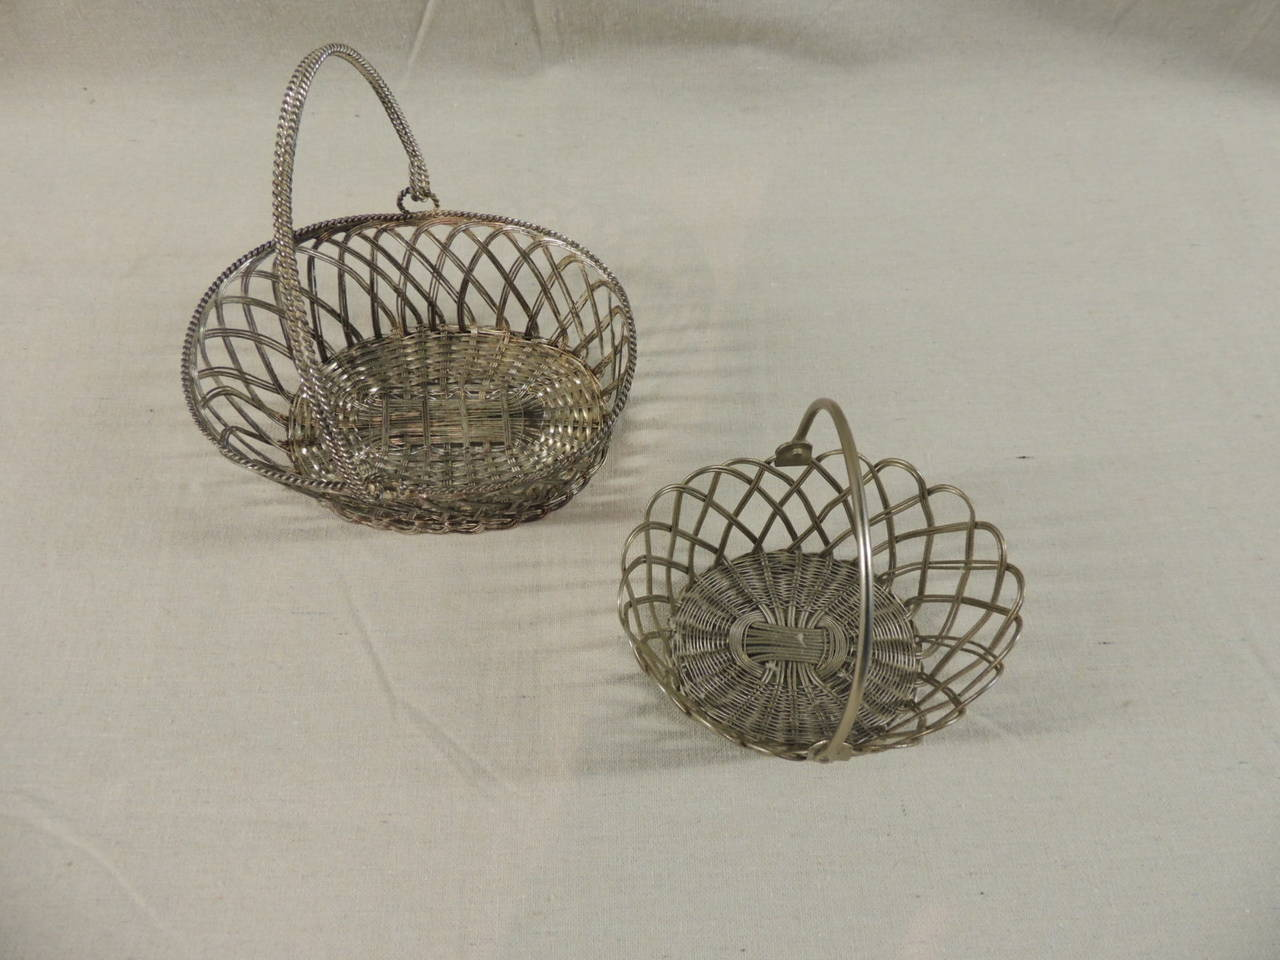 Flat Wire Sources : Flat wire baskets for sale at stdibs